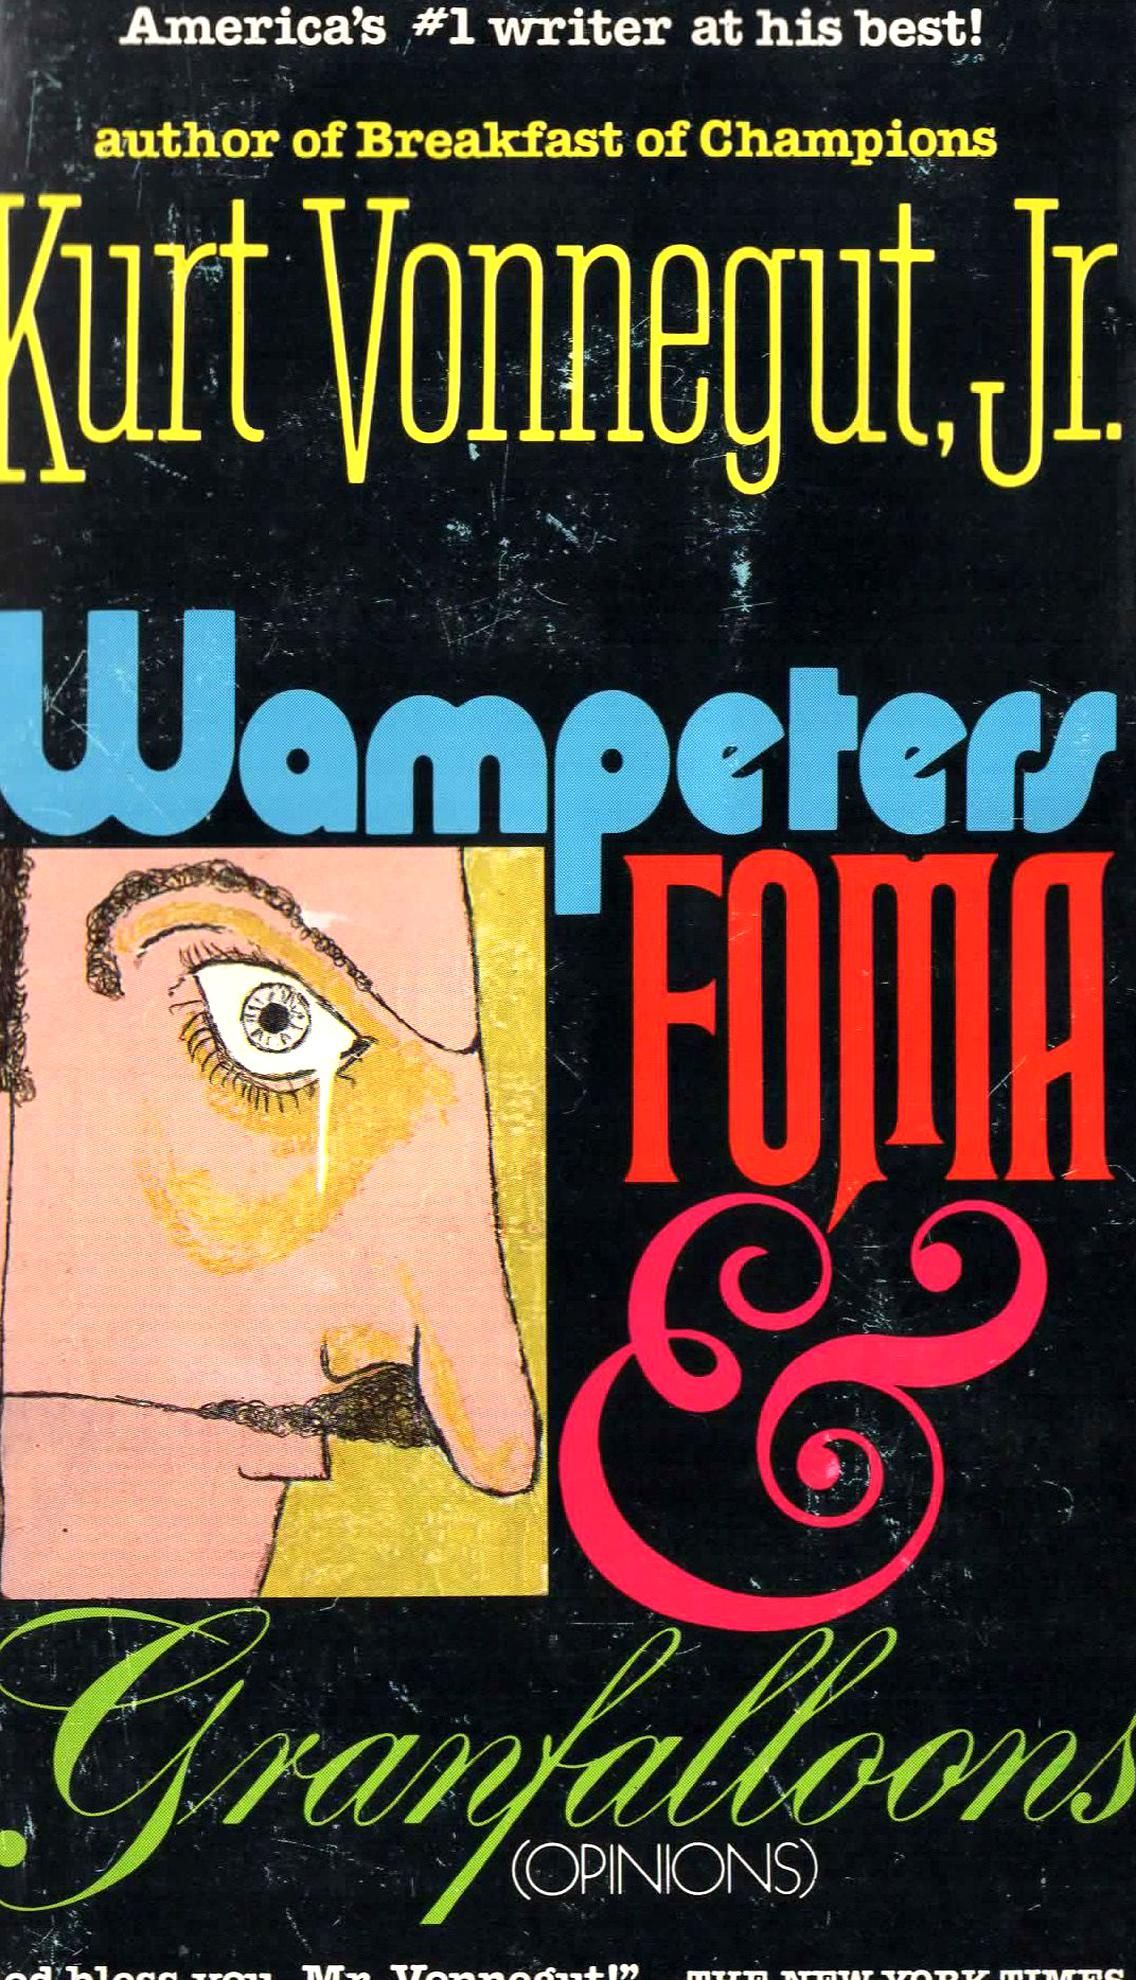 Wampeter Foma Granfalloon By Kurt Vonnegut A Dell Book Thi Printing 1976 Collection Of Essay And Opinion Mar In 2020 Paperback Author Essays